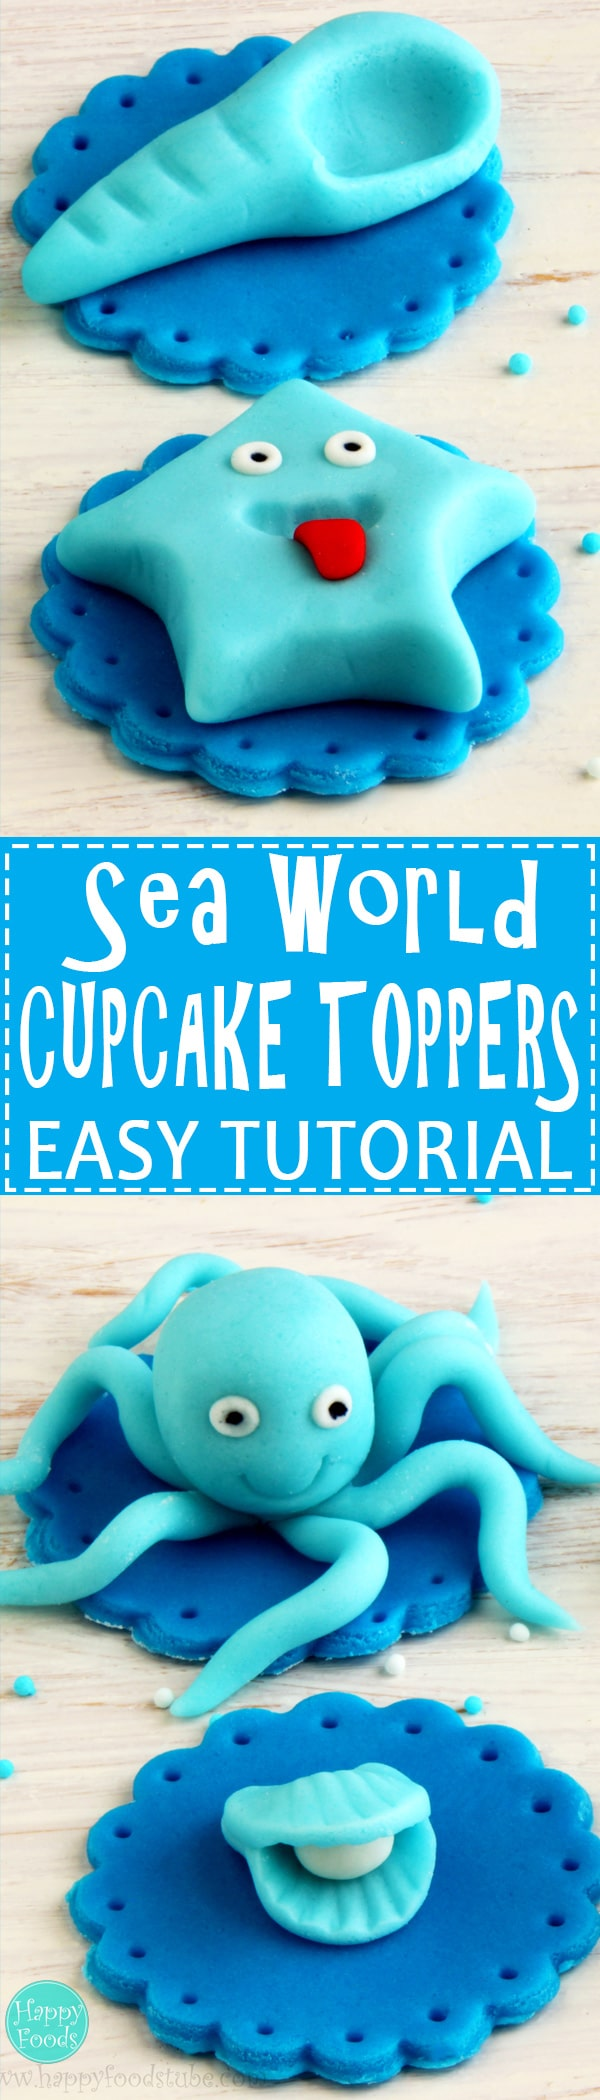 Sea World Cupcake Toppers - Easy fondant cake decorating tutorial. Learn how to make Star fish, Long shell, Oyster shell and Octopus. | happyfoodstube.com